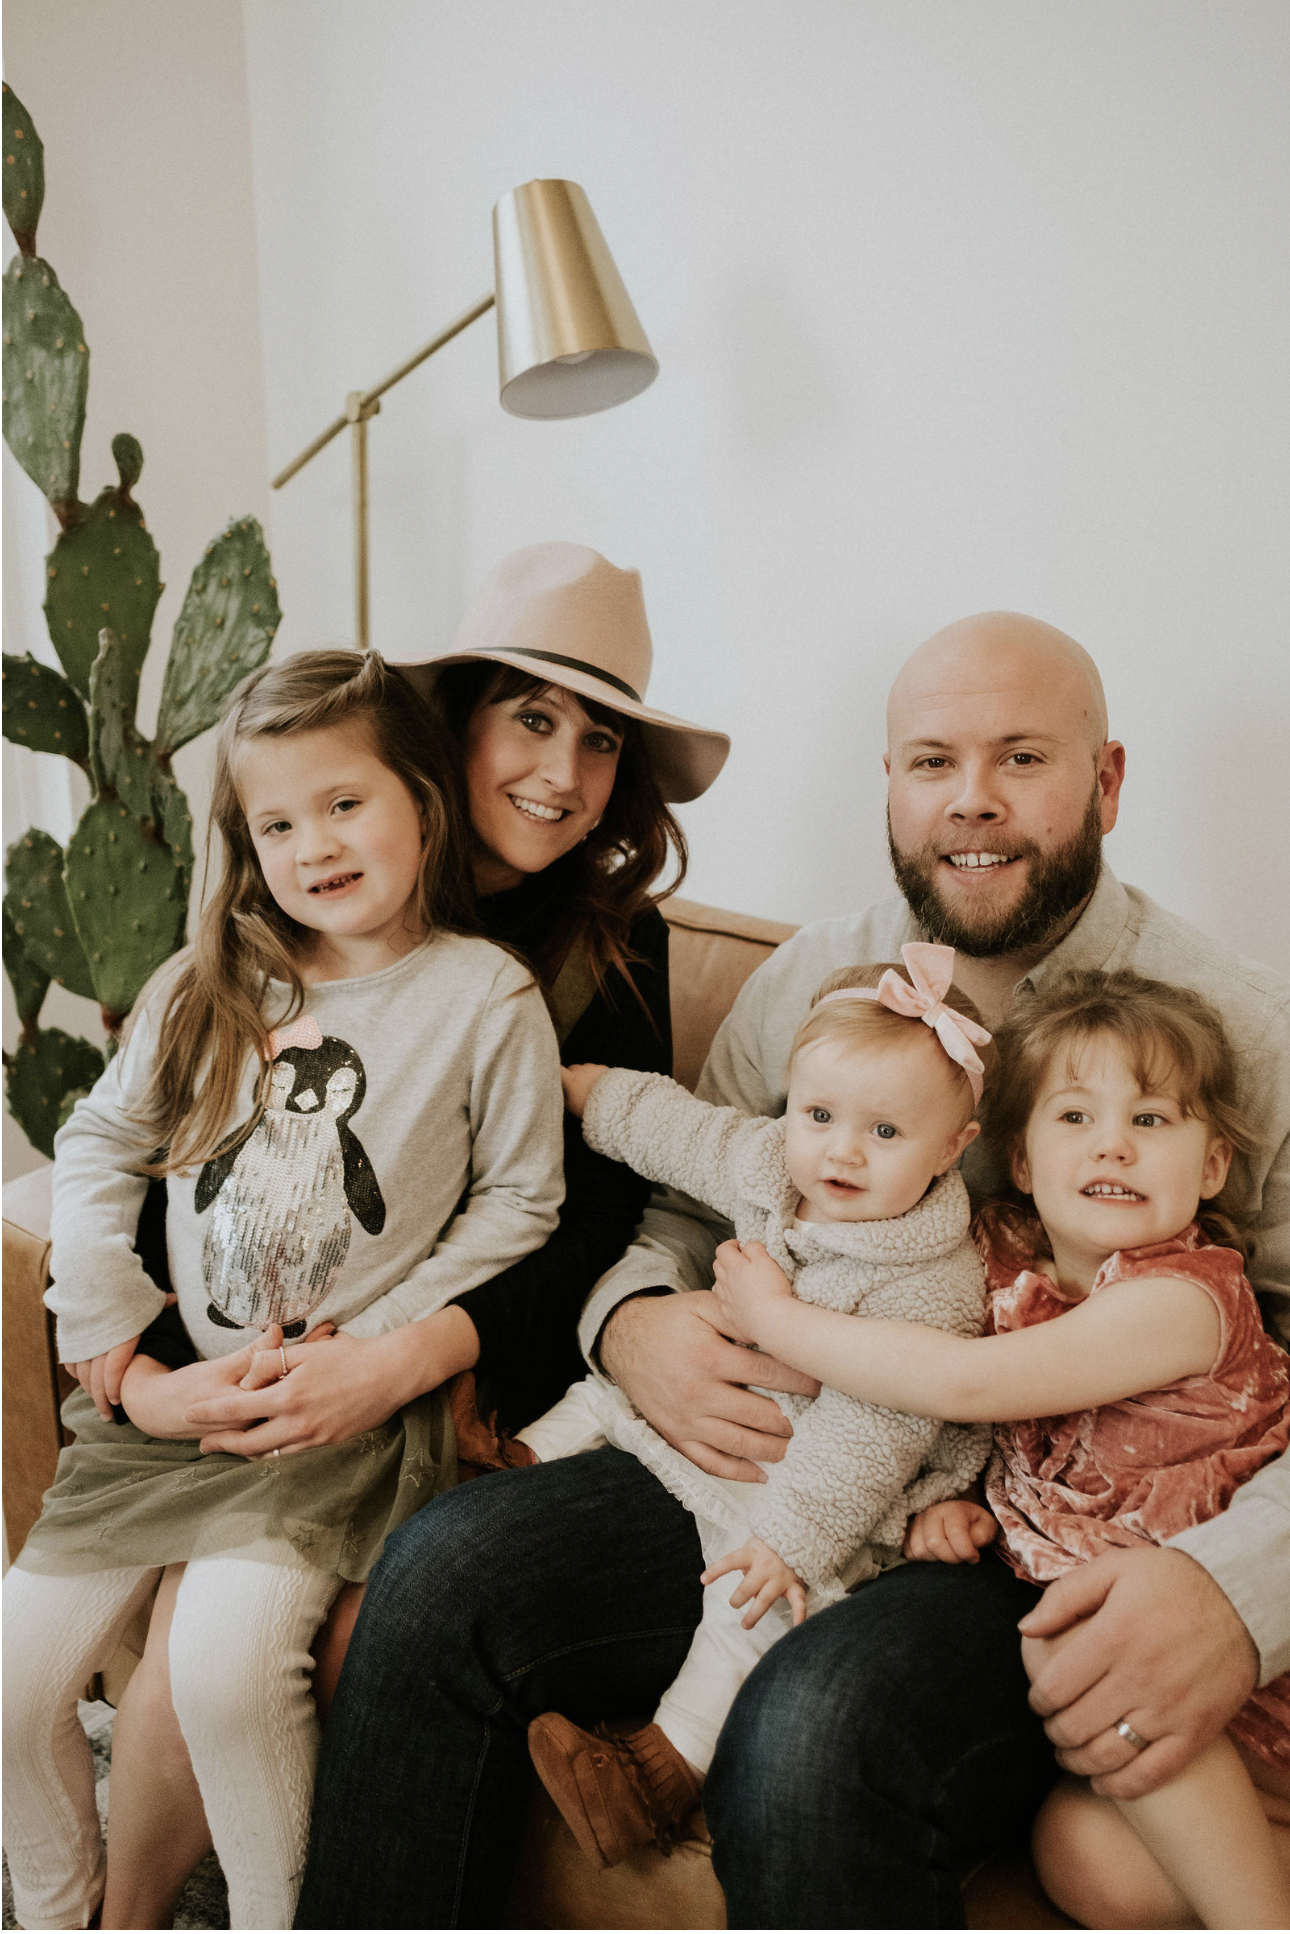 Meet Rob & Kierstyn Ryerson - Rob & Kierstyn have 3 children, Rose (6 years old), Clover (4 years old) and Lily (14 months old). Kierstyn received her teaching credentials from Fresno Pacific University. She had planned to be a missionary overseas. Somehow Rob convinced her to follow him here in the US. They are big Disney fans and enjoy a good dinner without kids. Over the years Rob has converted his family to the dark side as they bleed Patriot colors. If Rob wasn't a Pastor he'd love to be a general manger of a sports team. Kierstyn would likely travel the world. Their daughter Rose has high aspirations of some day being a snake trainer in Australia. Clover is set on being a superhero, preferably Bat Woman. Lily really just wants to be wherever Mom is.